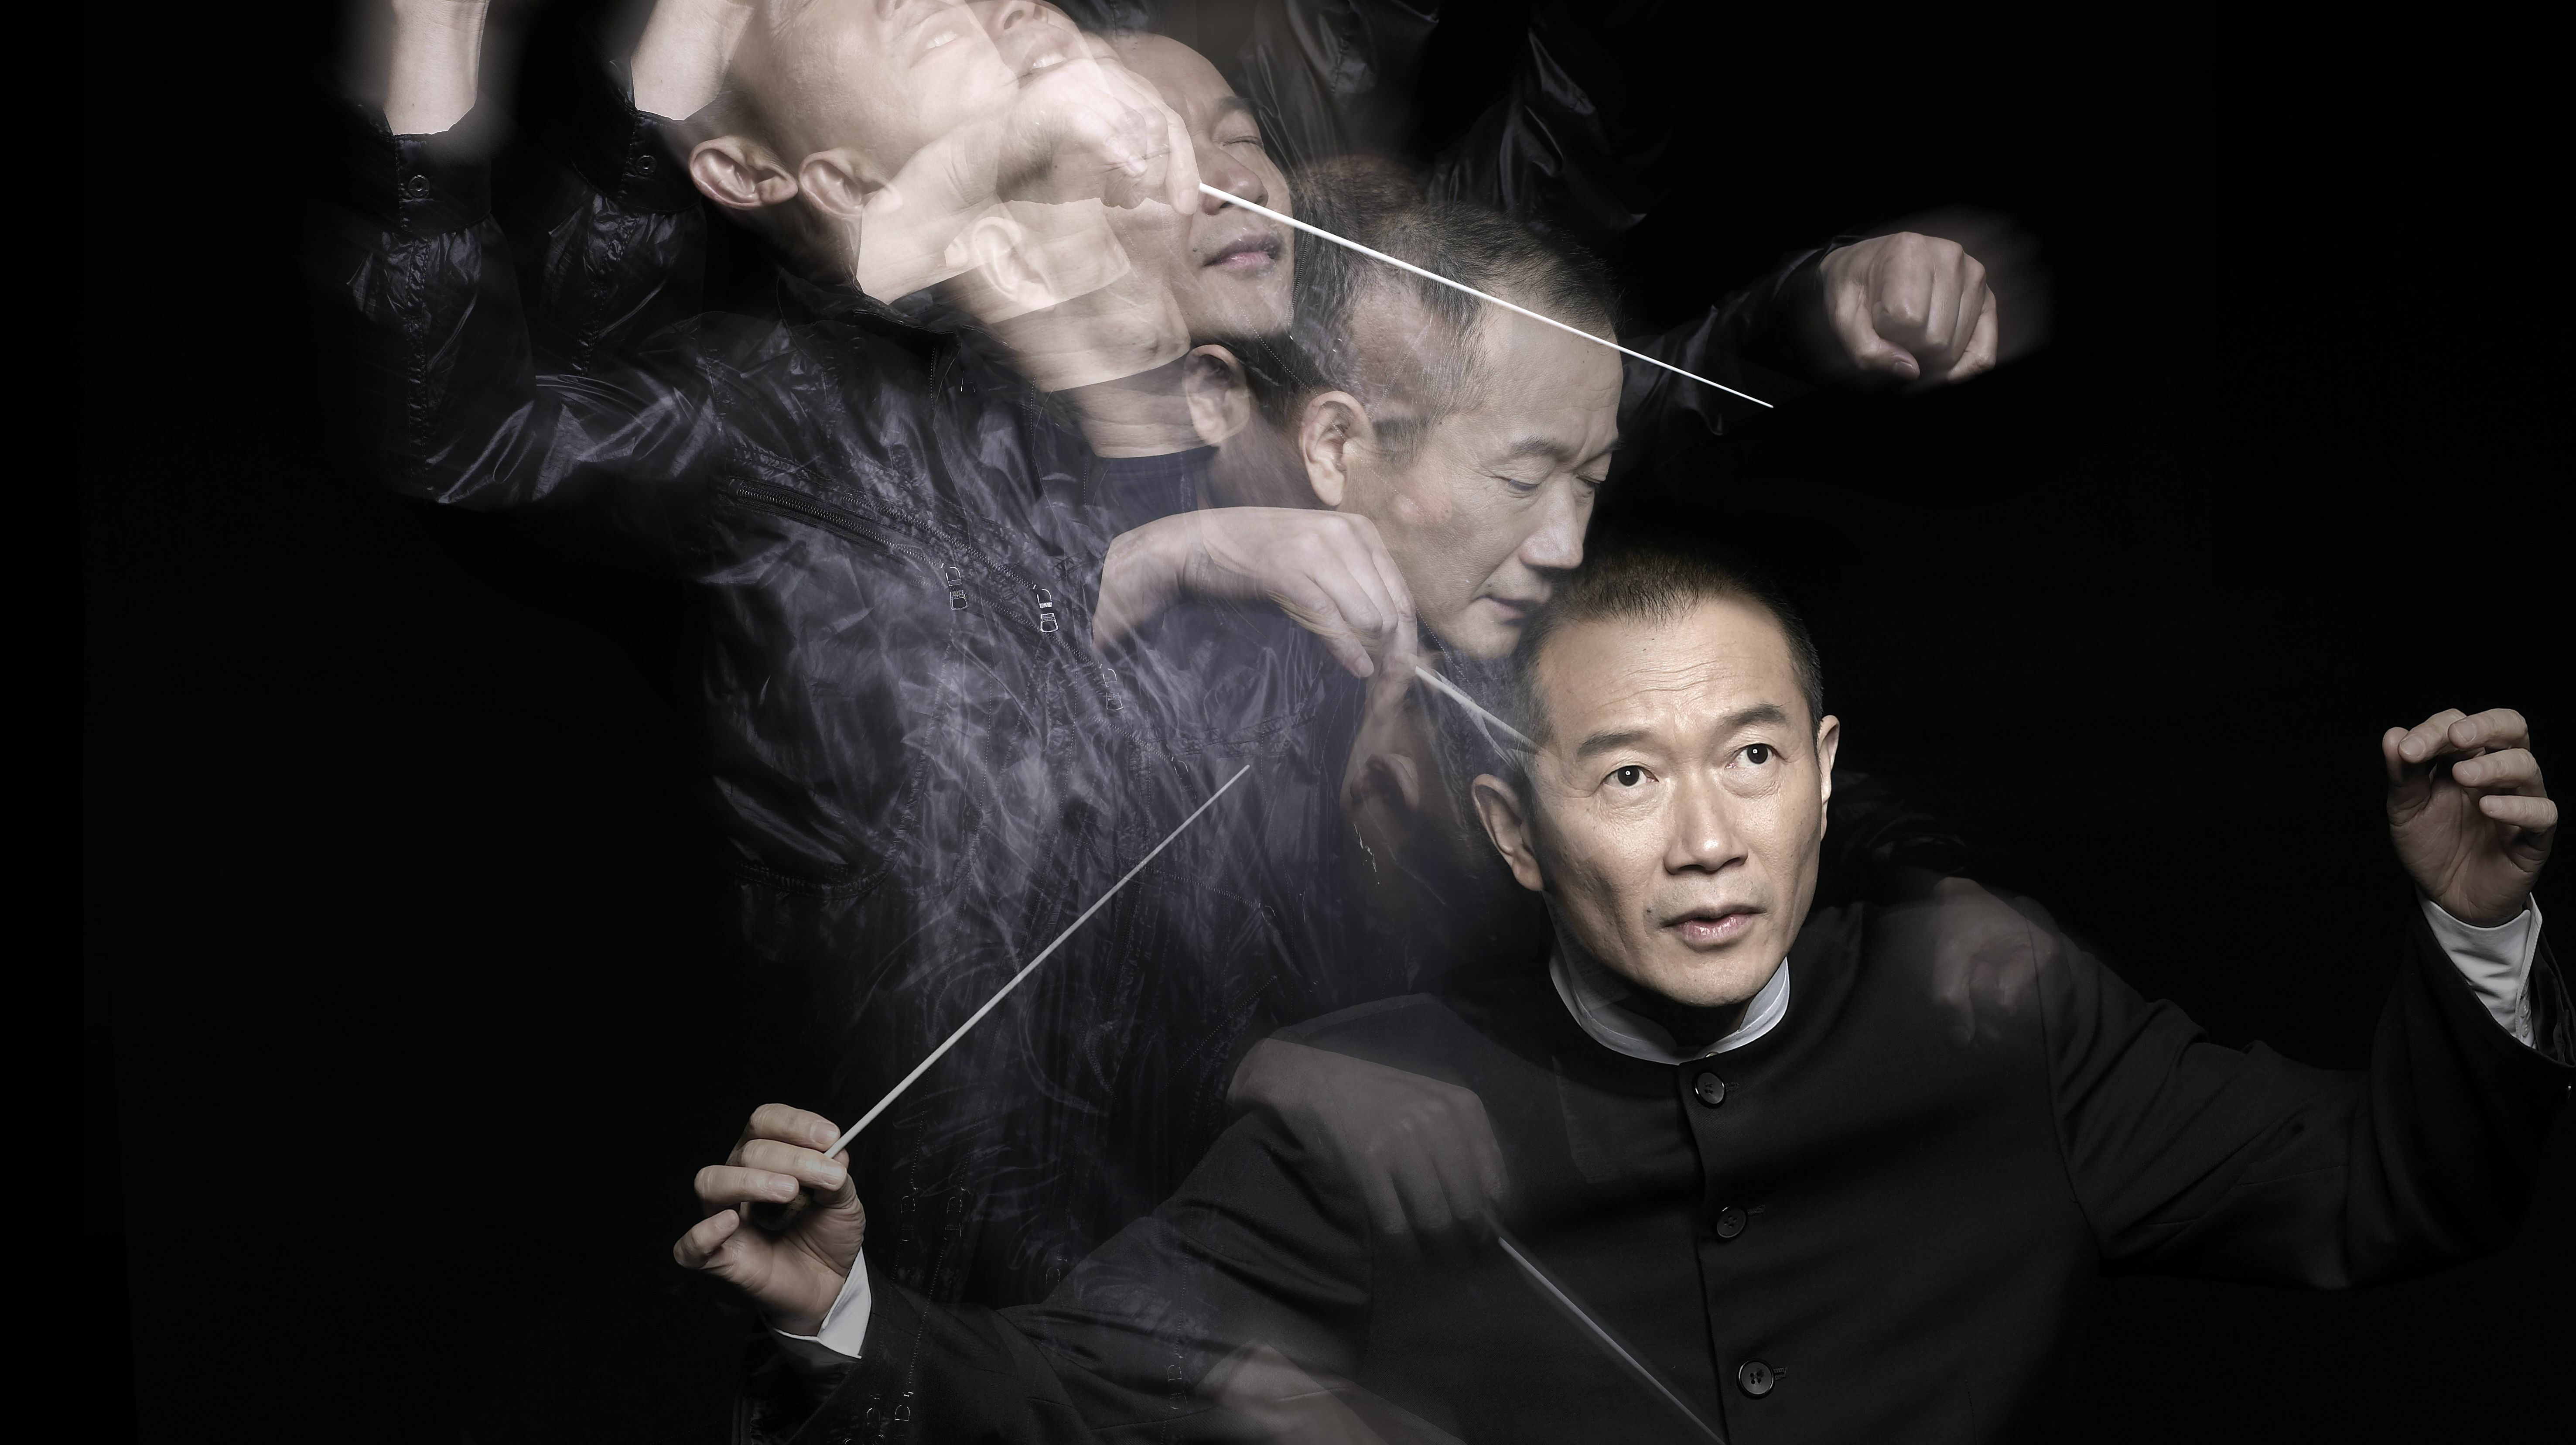 Academy Award Winner Tan Dun Conducts The Orchestra Now